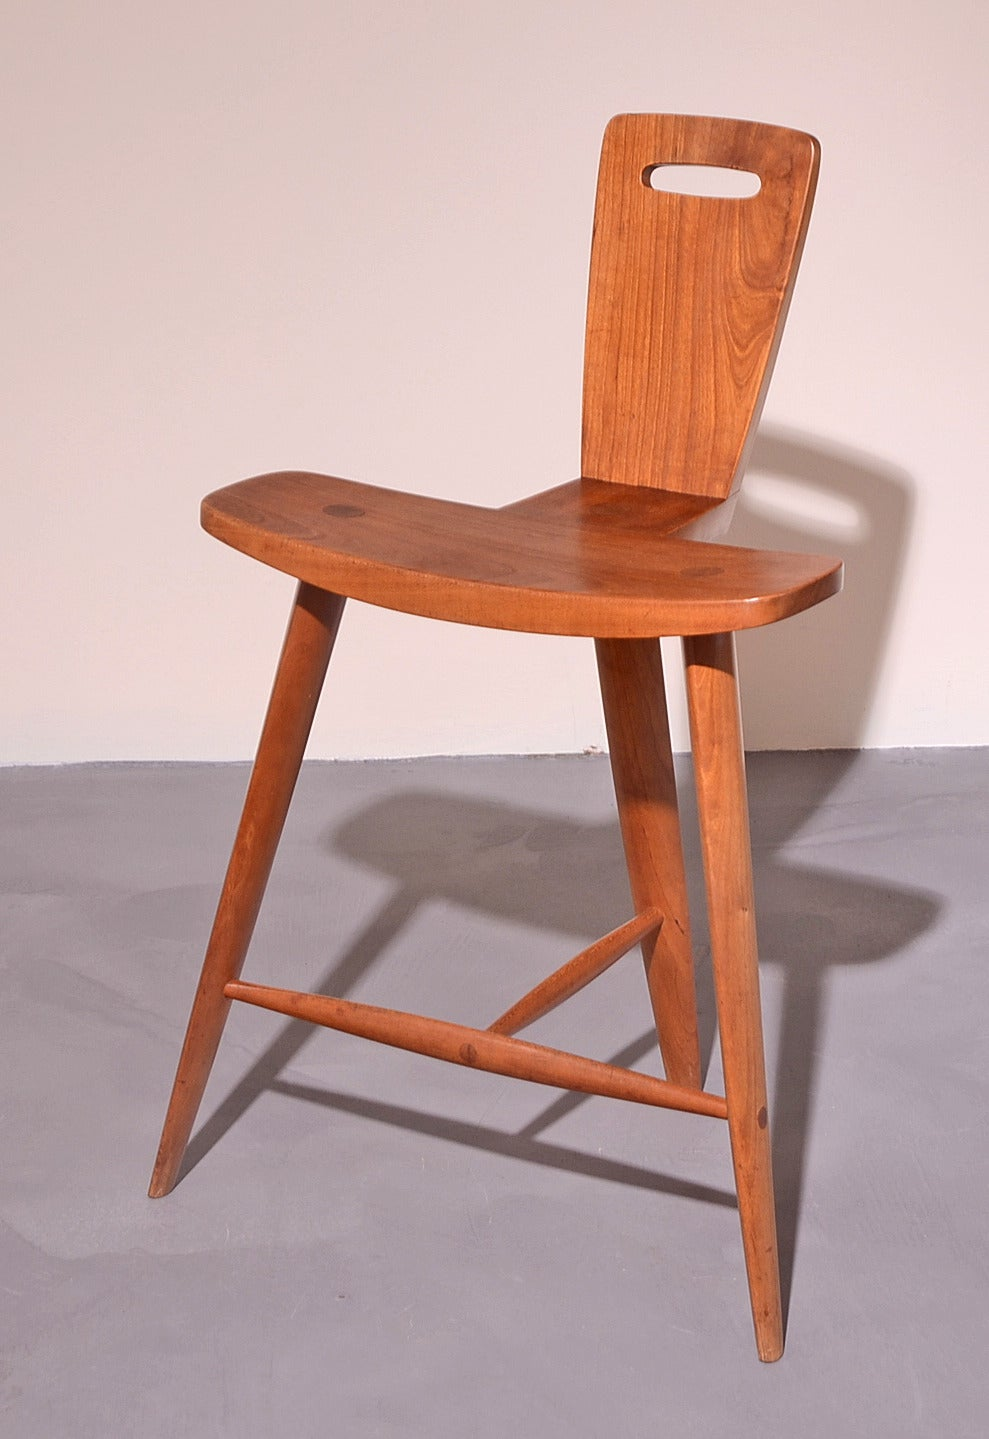 extremely rare three legged stool by tage frid for sale at 1stdibs